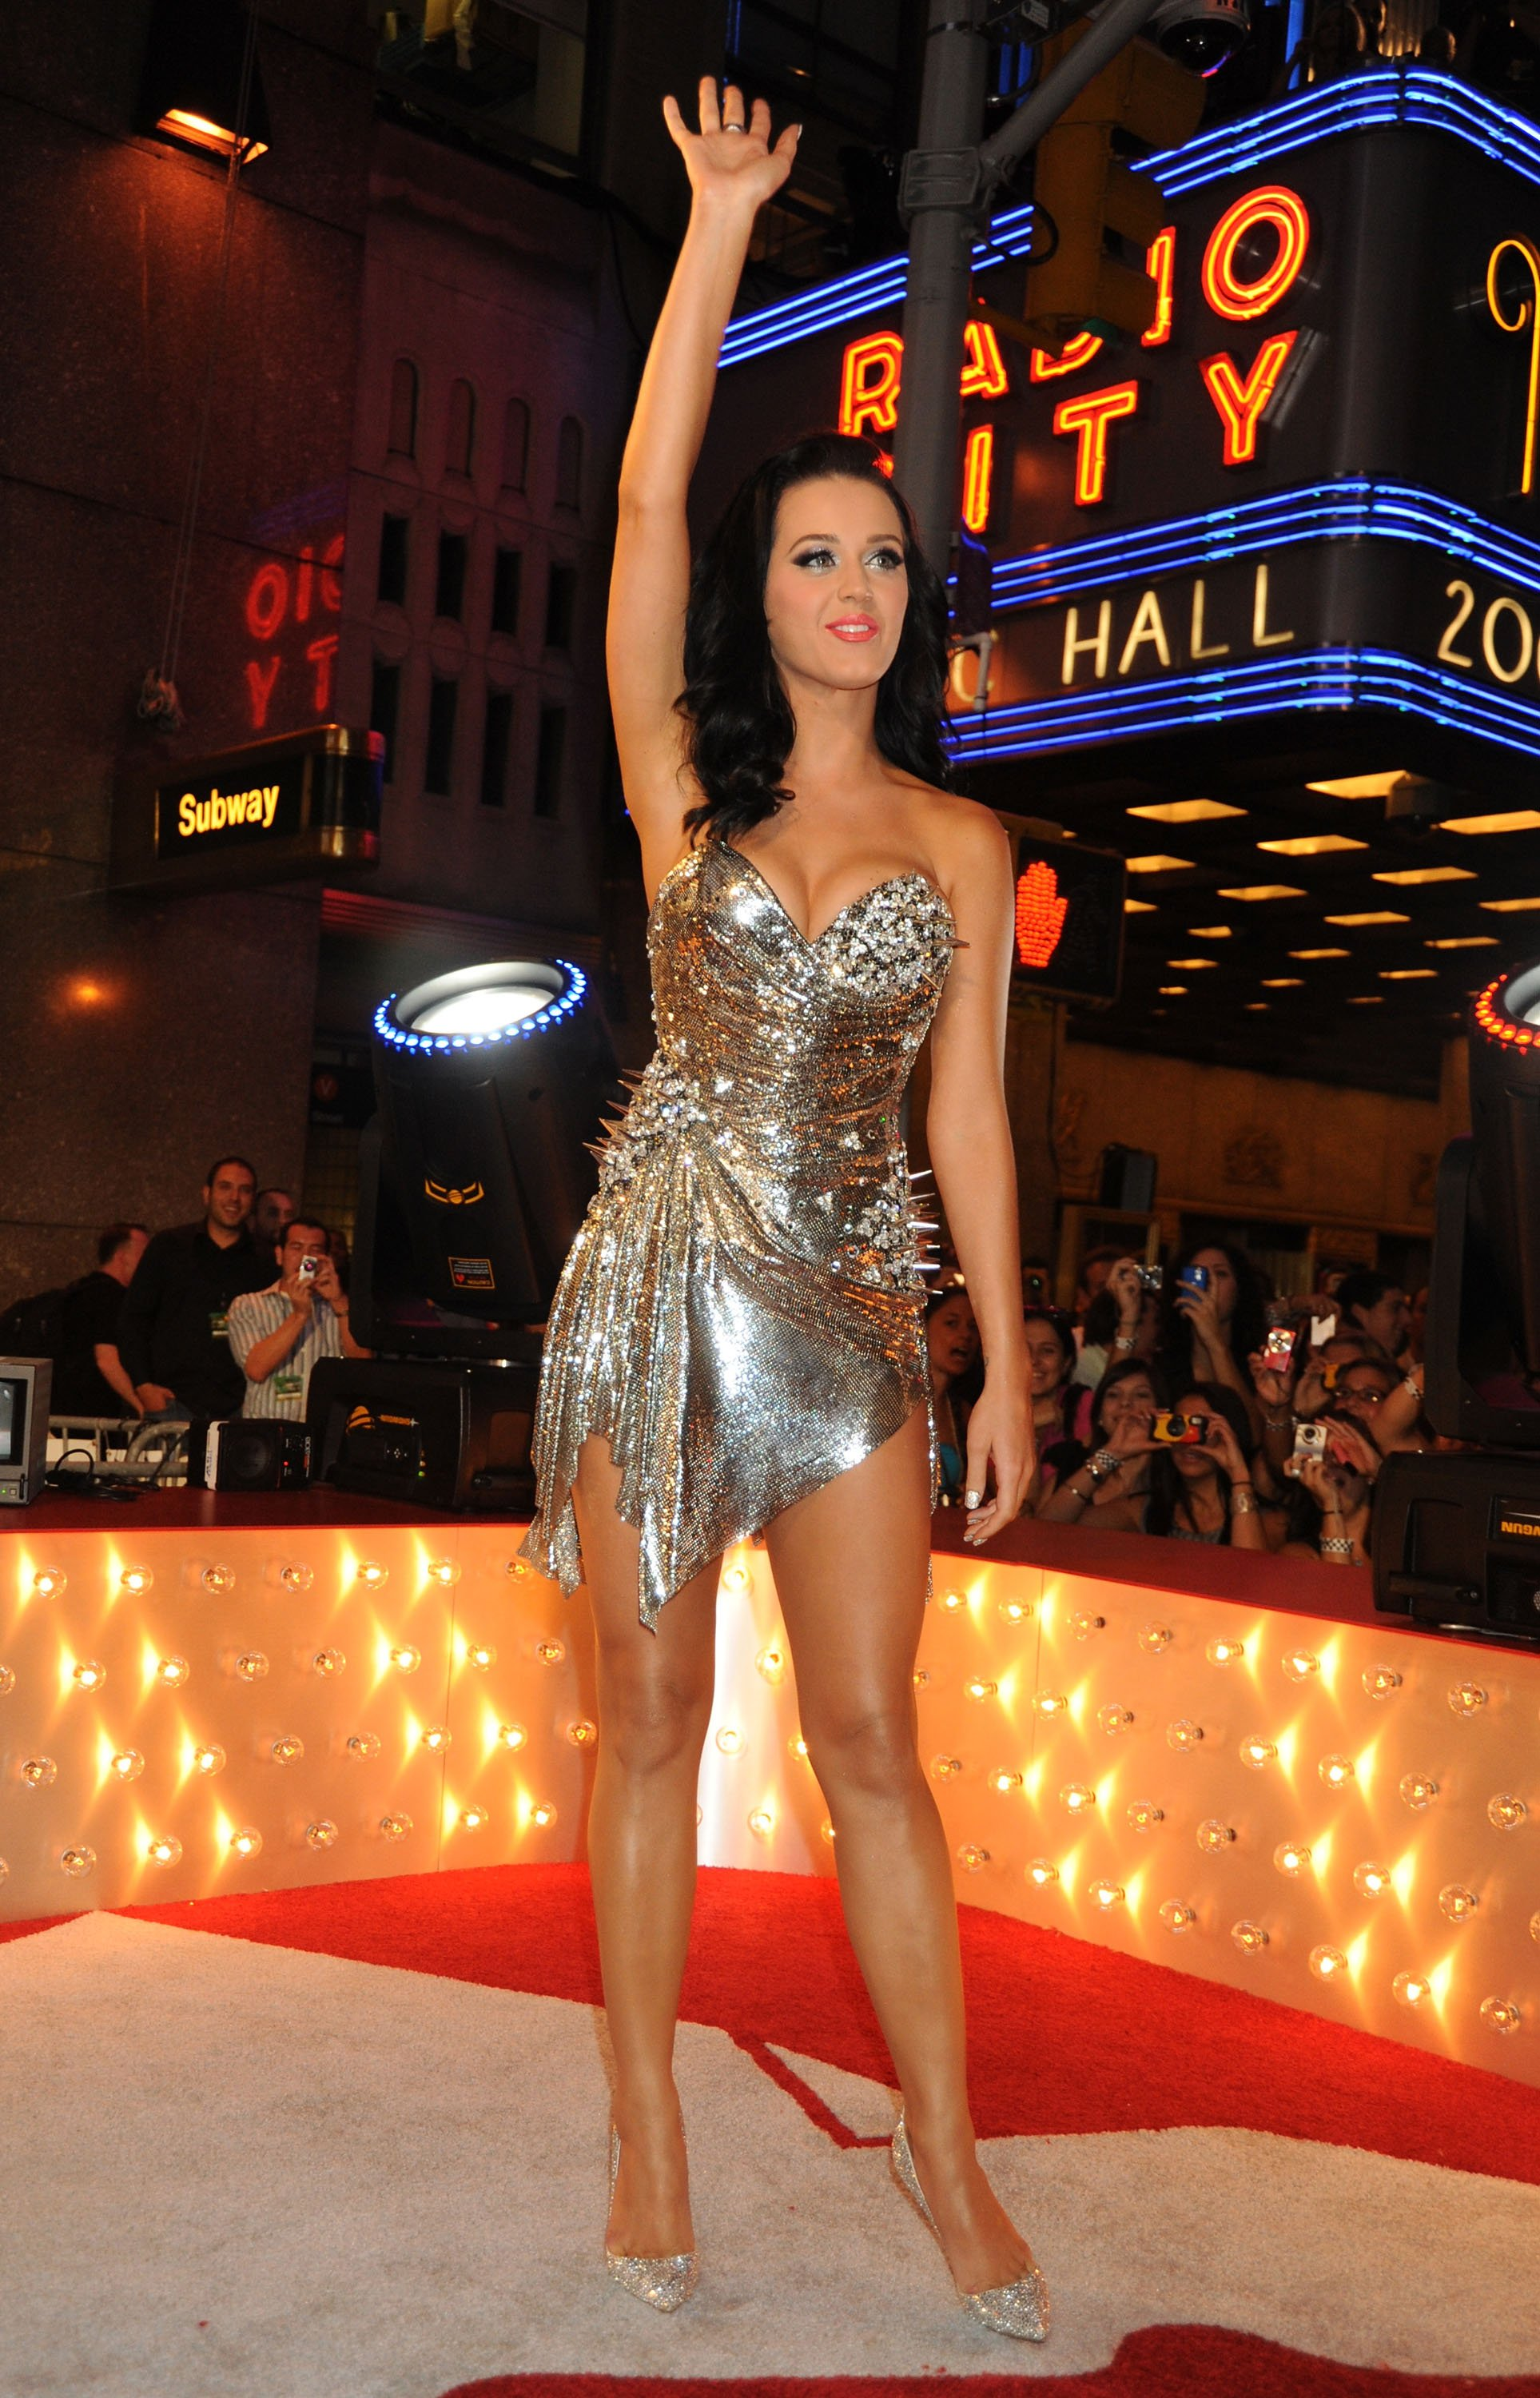 88251_Celebutopia-Katy_Perry_arrives_at_the_2009_MTV_Video_Music_Awards-06_122_400lo.jpg